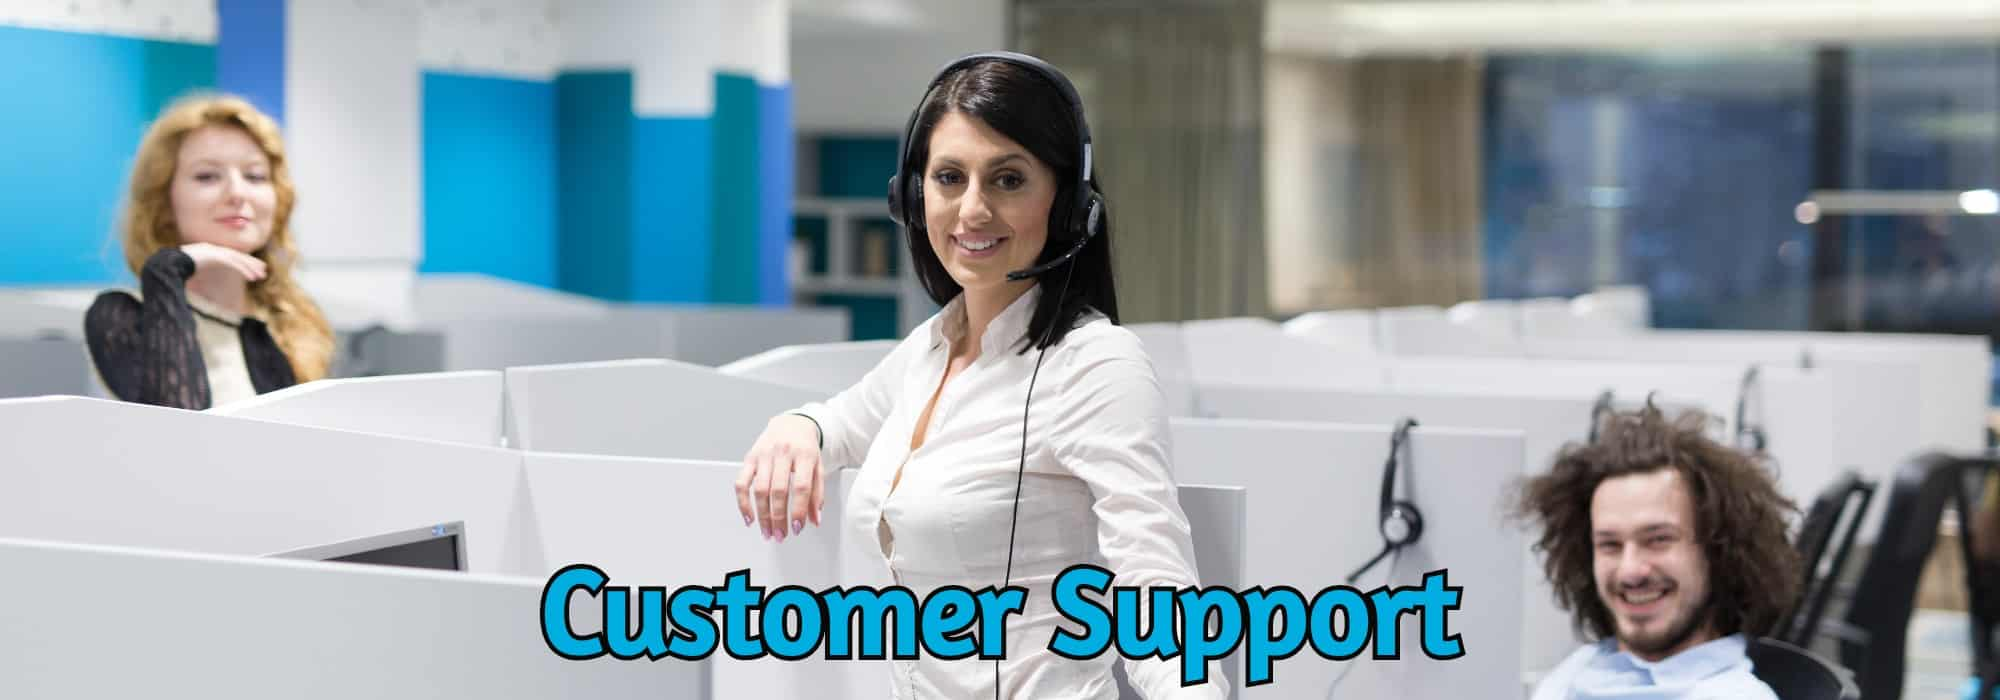 Customer Support, afinil express review